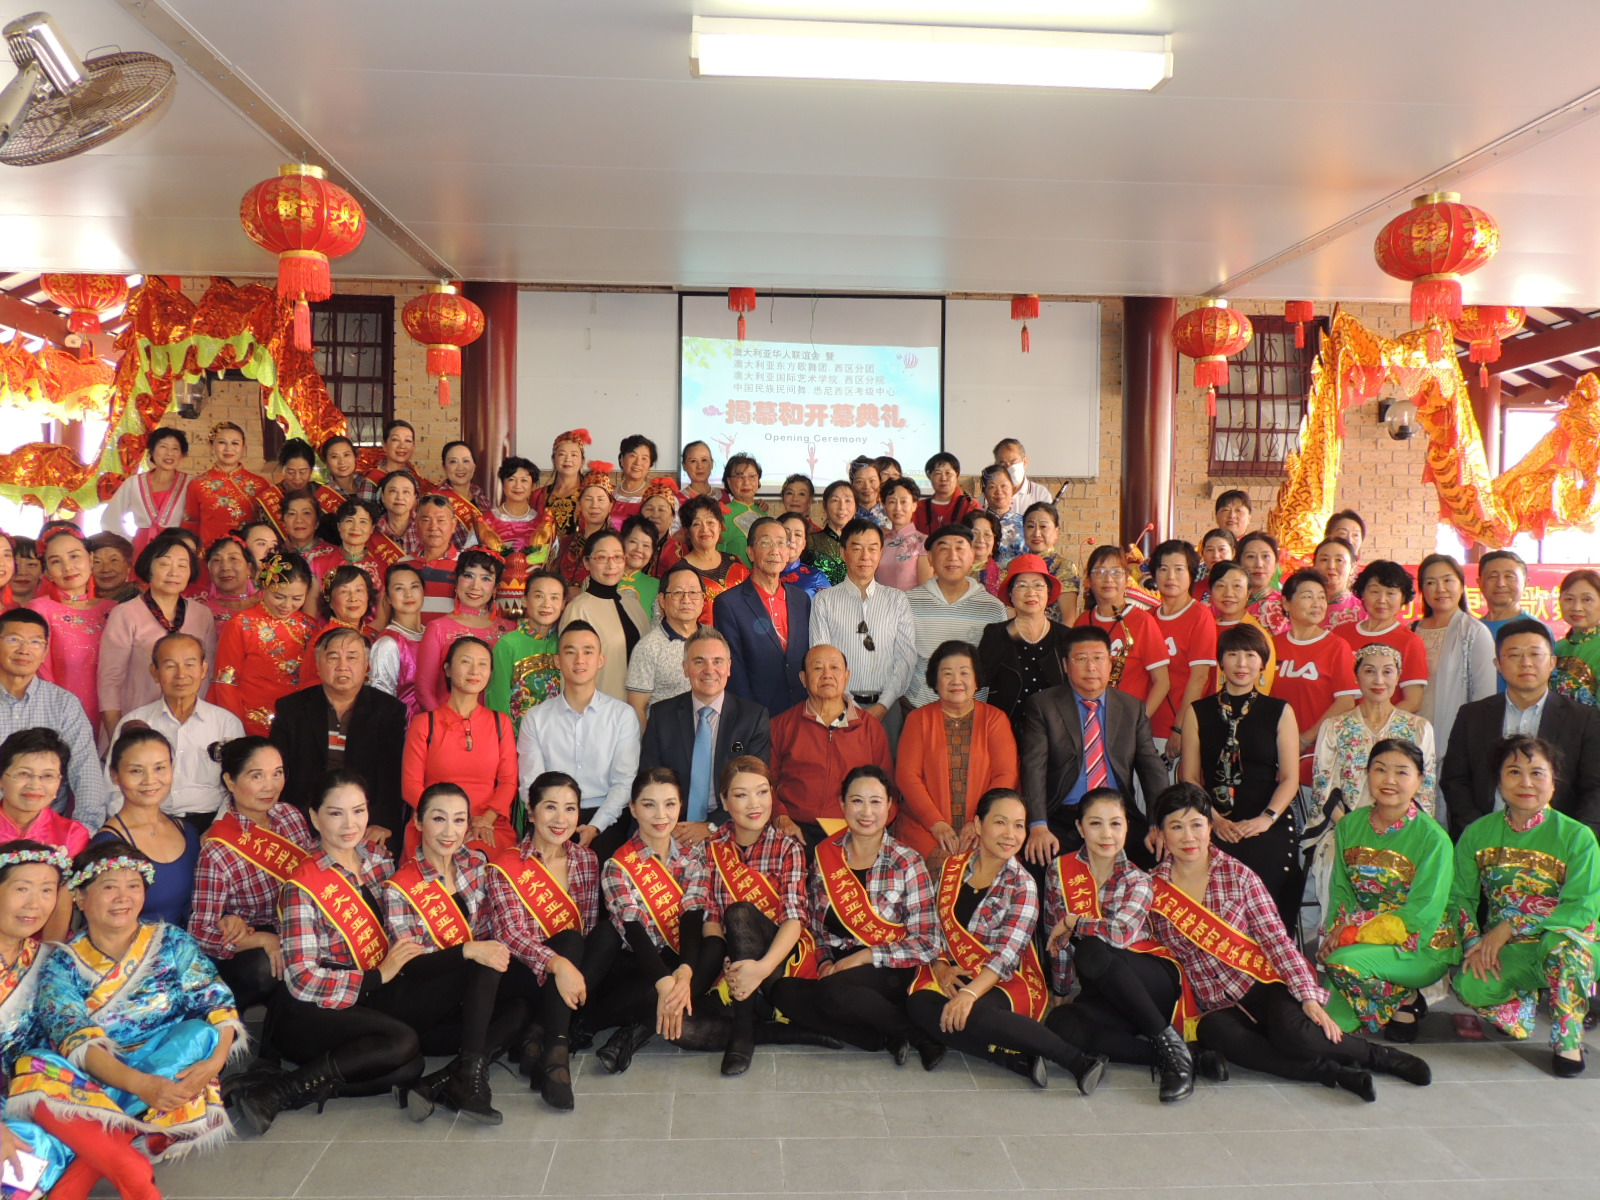 The opening of the Oriental Song and Dance Ensemble and the School of Arts Branch in Sydney's Western District to cultivate artistic talents | Australia Chinatown Community News